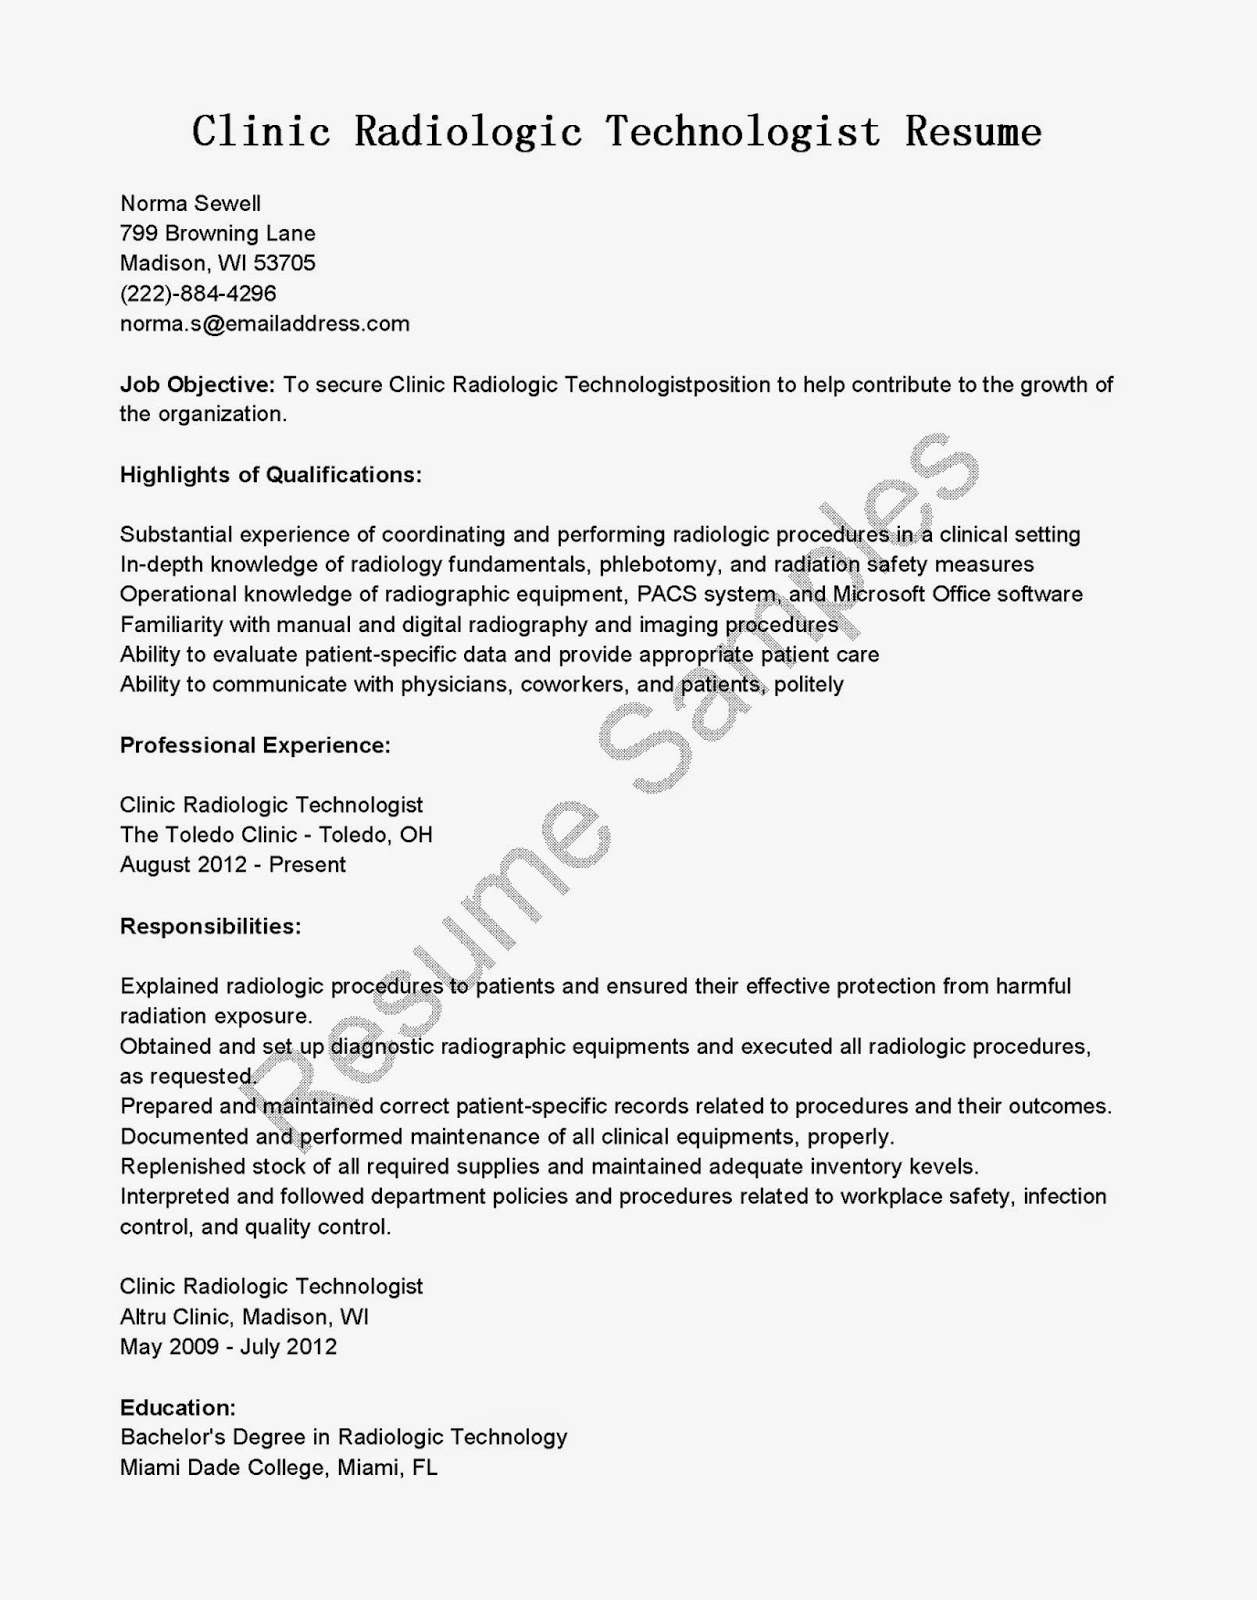 sample resume for radiologic technologist sample resume for radiologic technologist karina m tk